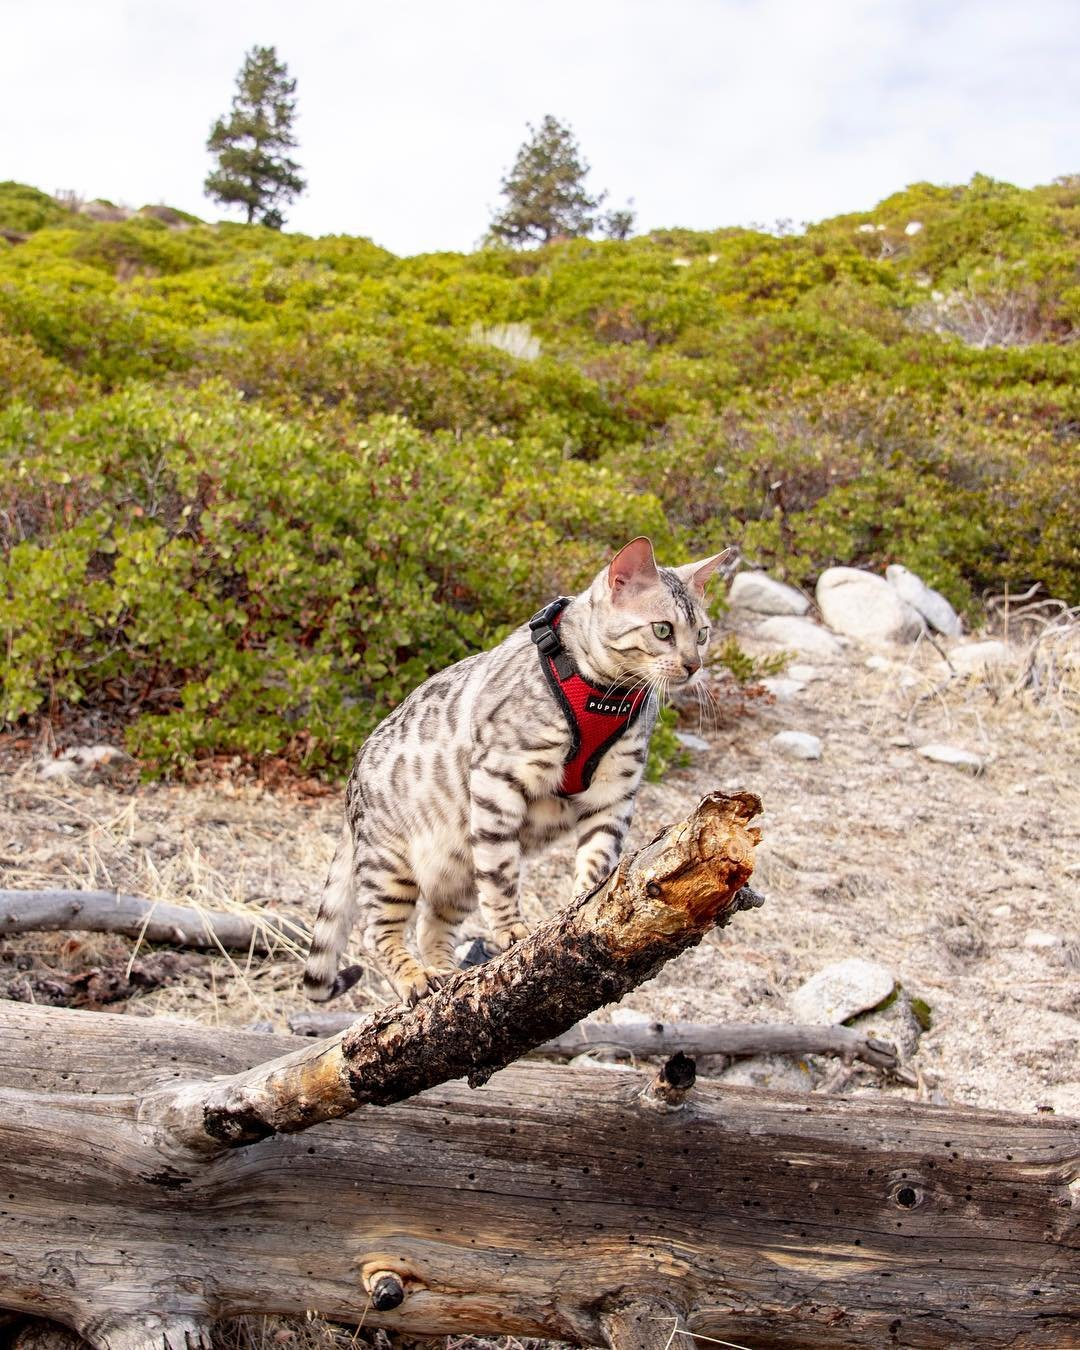 Spring is here!!! Gotta go out and smell all the things and chase all the bugs. • • • #nixthebengal #nevadastateparks #nvstateparks #silverbengal #getoutsidemore #outdoorcat #catonaleash #bringonthesnow #krazycatoftheday #meowed #adventureon #adventurecats #adventurecat #getoutthere #ig_bengals #getoutthere #catsoftheworld #igcats #catphoto #purr #topcatphoto #instakitty #animalphotography #meowbox #d750